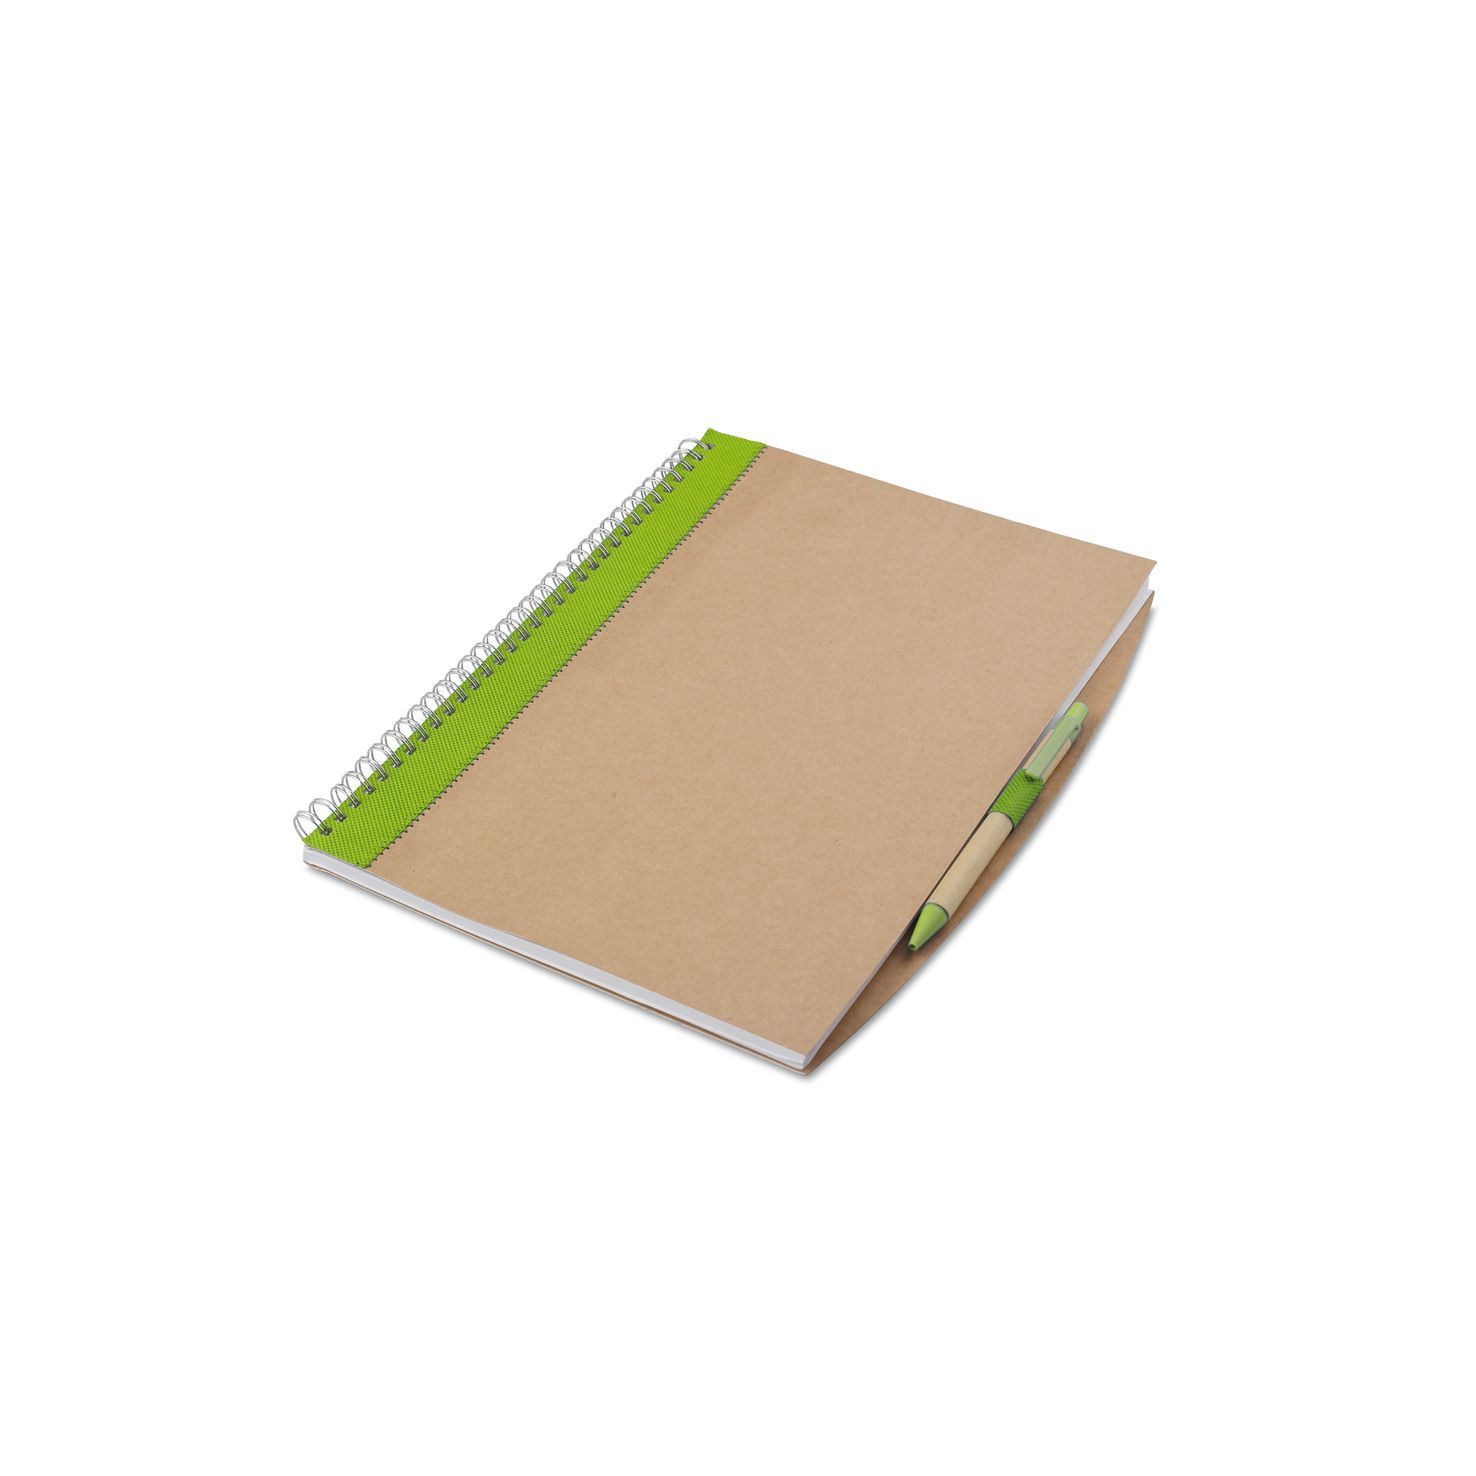 Lime Eco notitieboek | A4